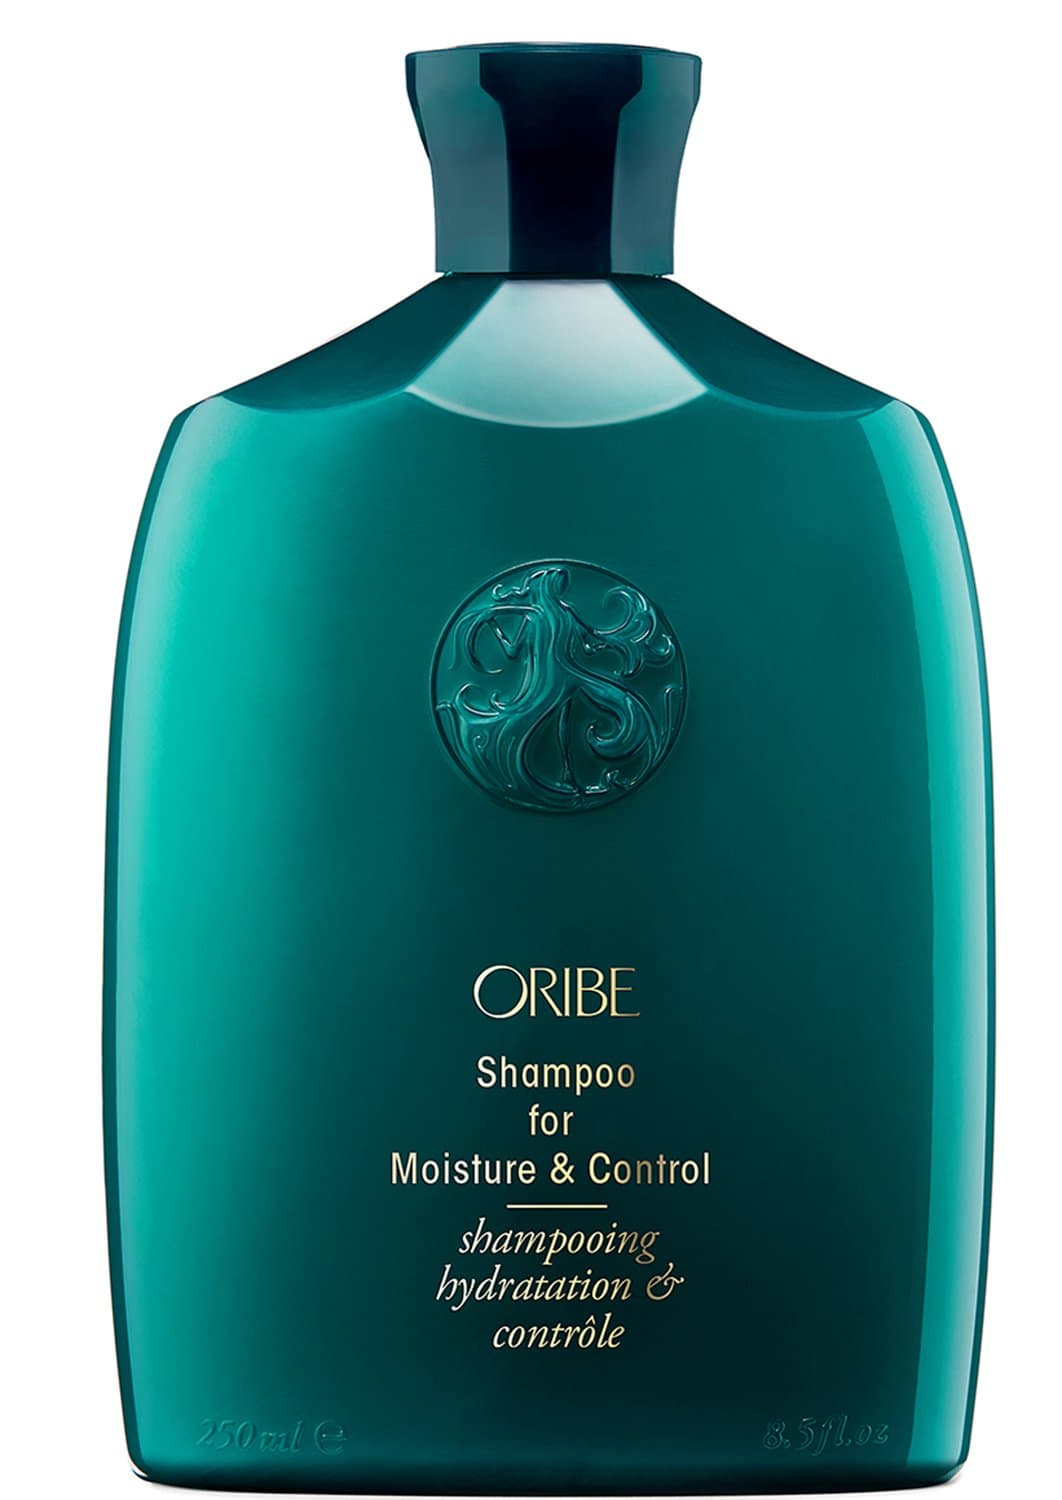 Shampoo for Moisture & Control 250ml | Oribe